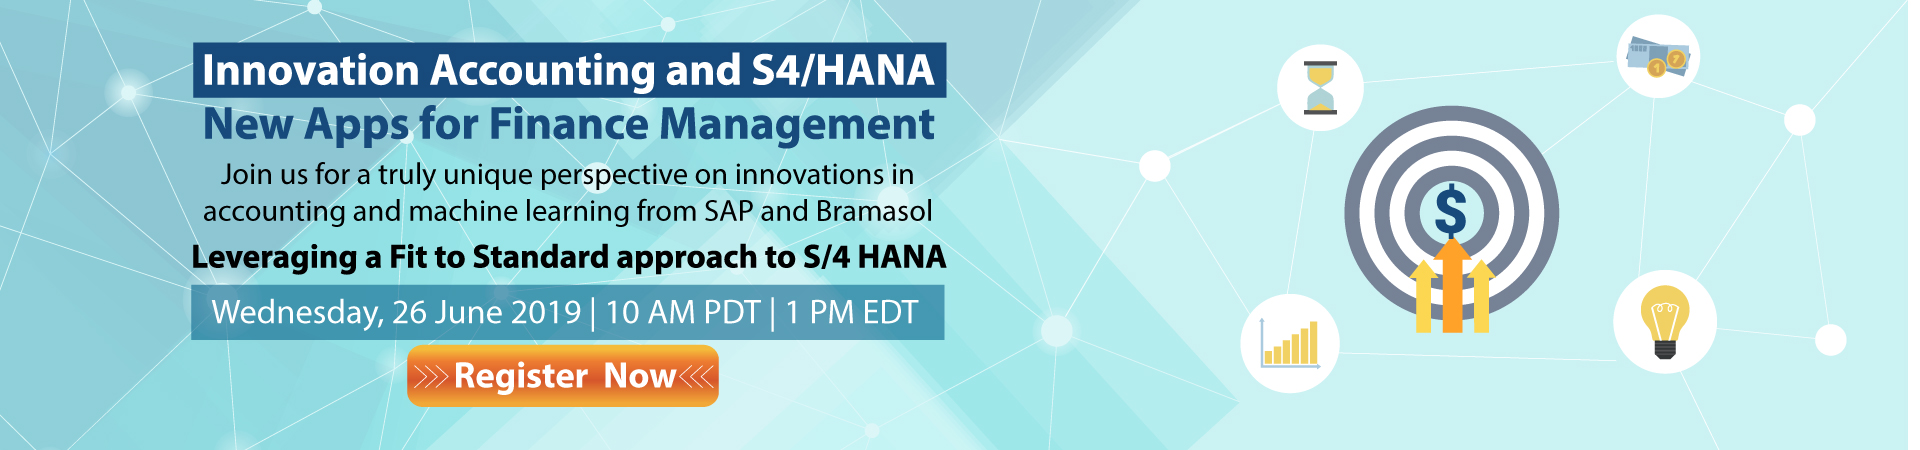 Innovation Accounting and S/4HANA - New Apps for Finance Management